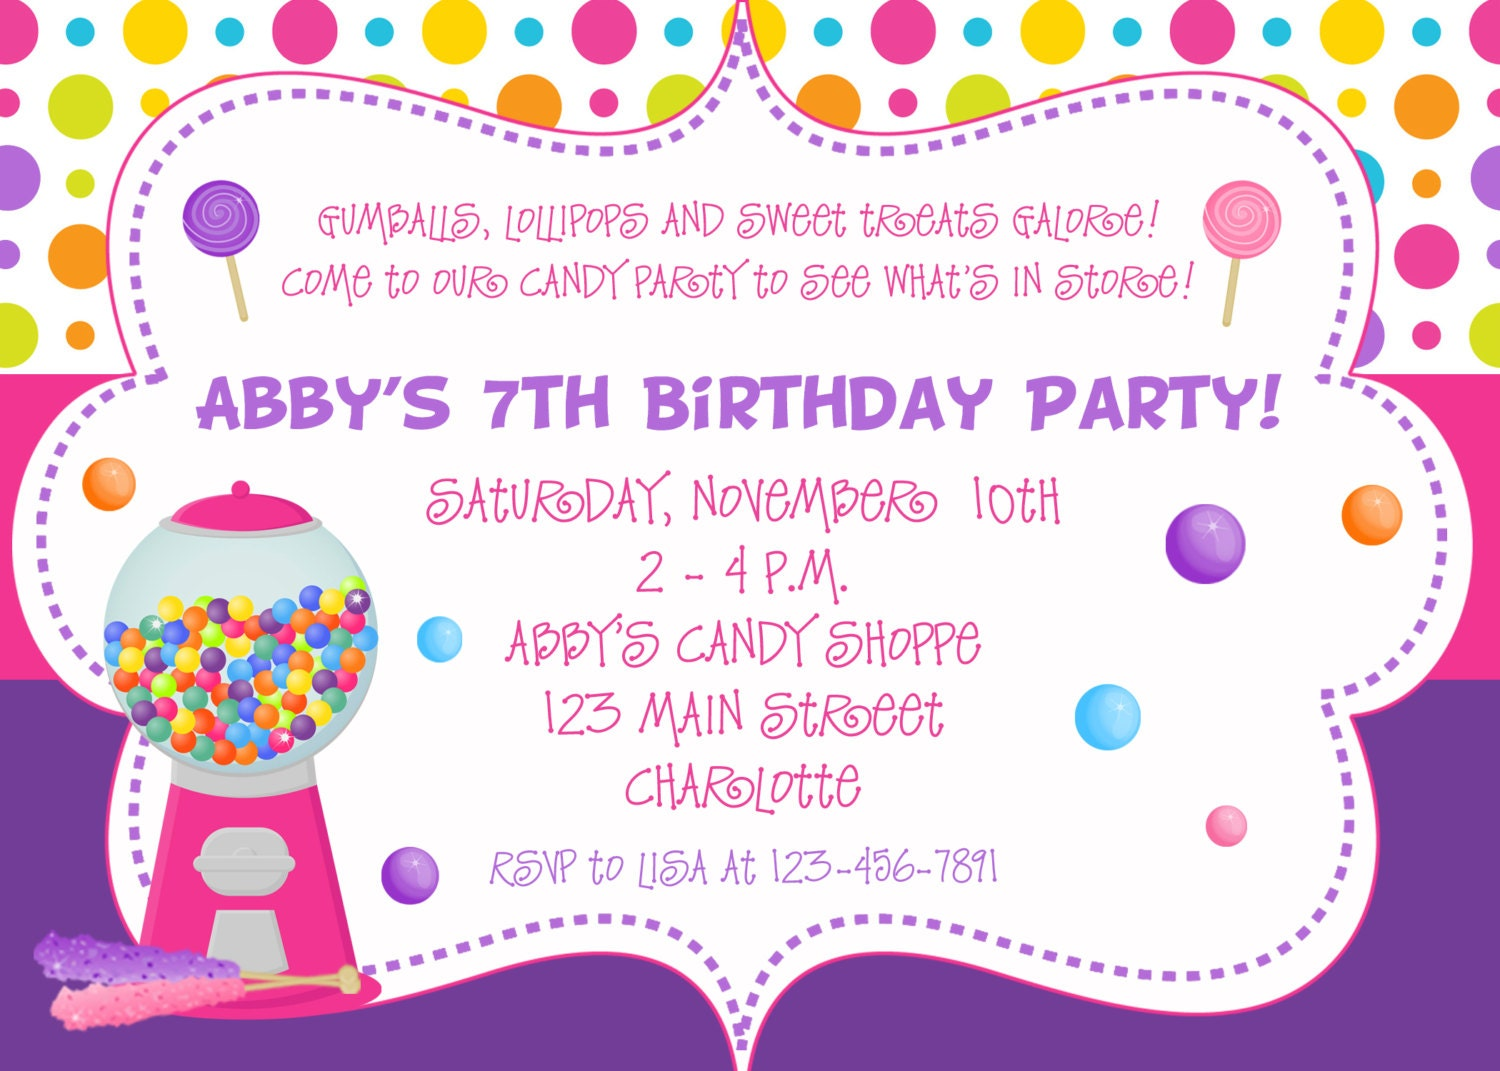 Invitation design ideas candy birthday party invitation candy party candy birthday party invitation candy party by thebutterflypress filmwisefo